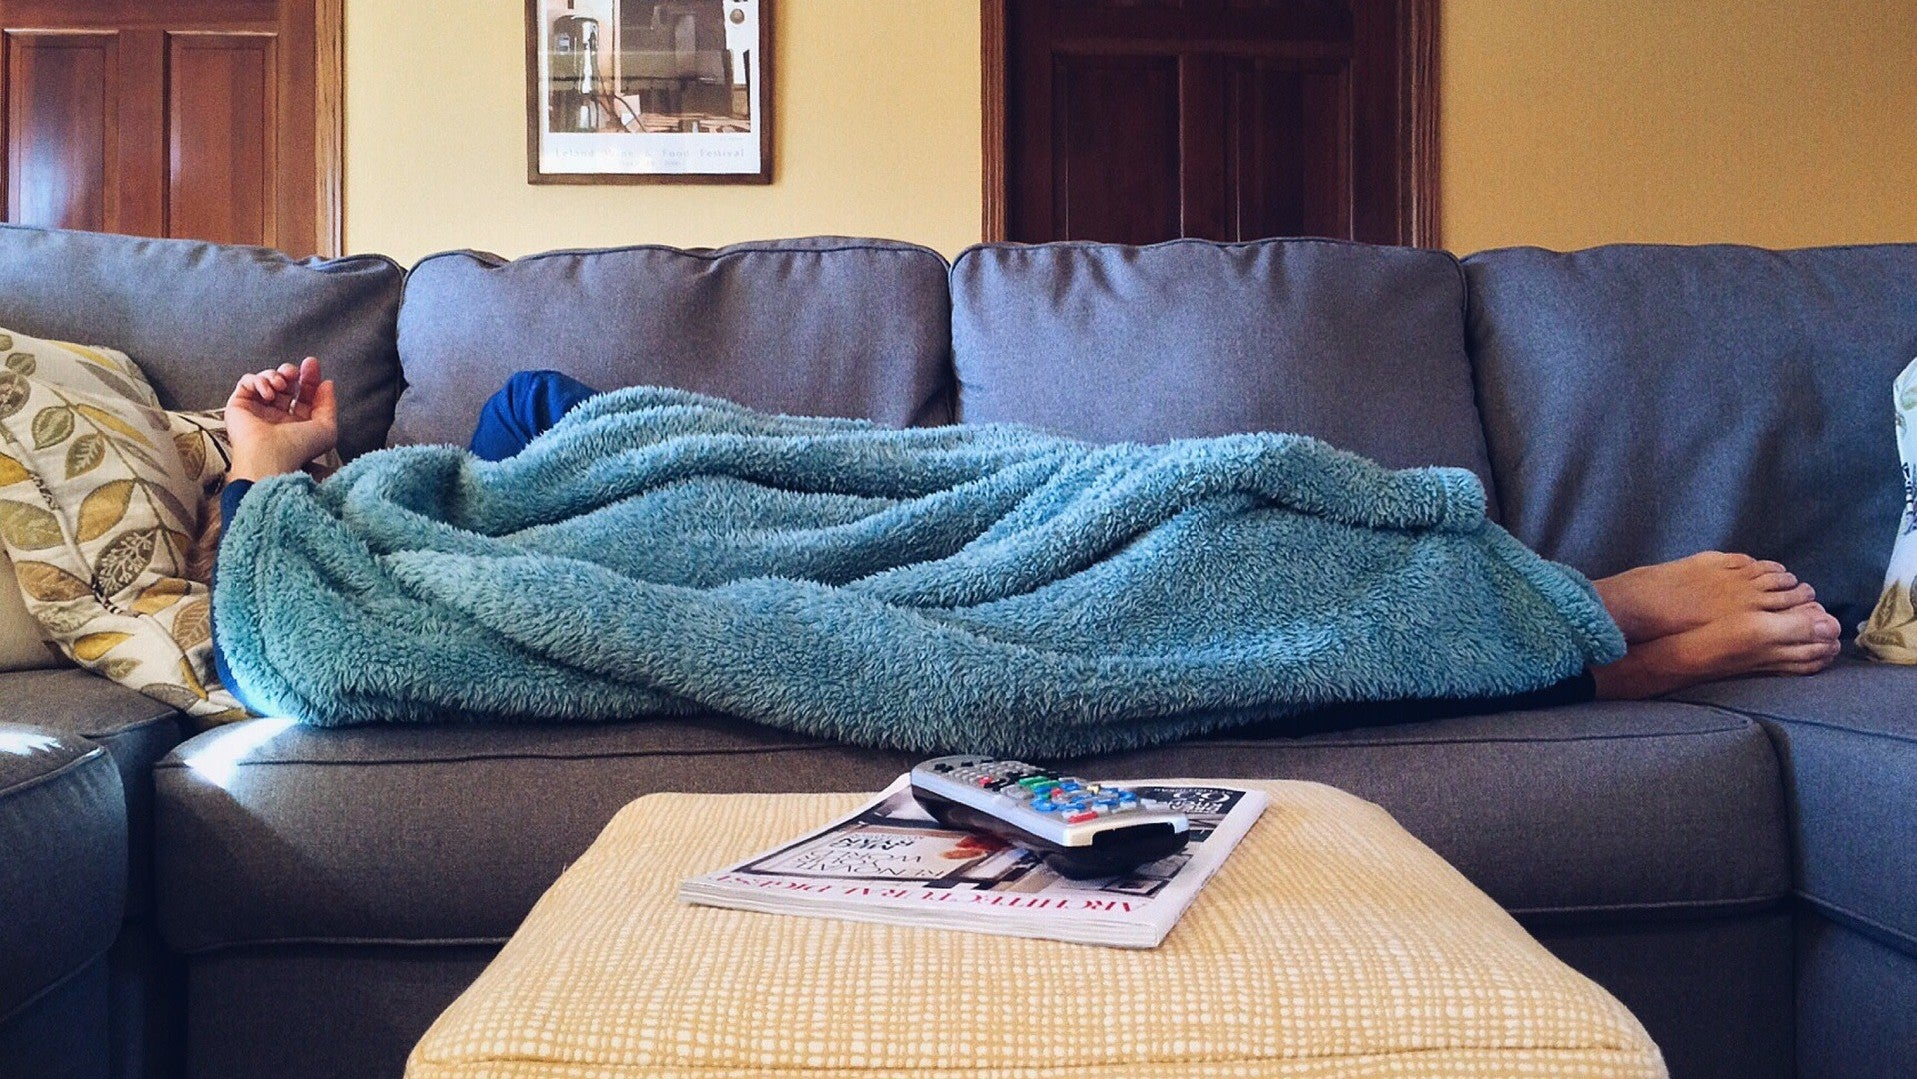 Why It's Not Good To Be The Person Who Can Fall Asleep Anywhere